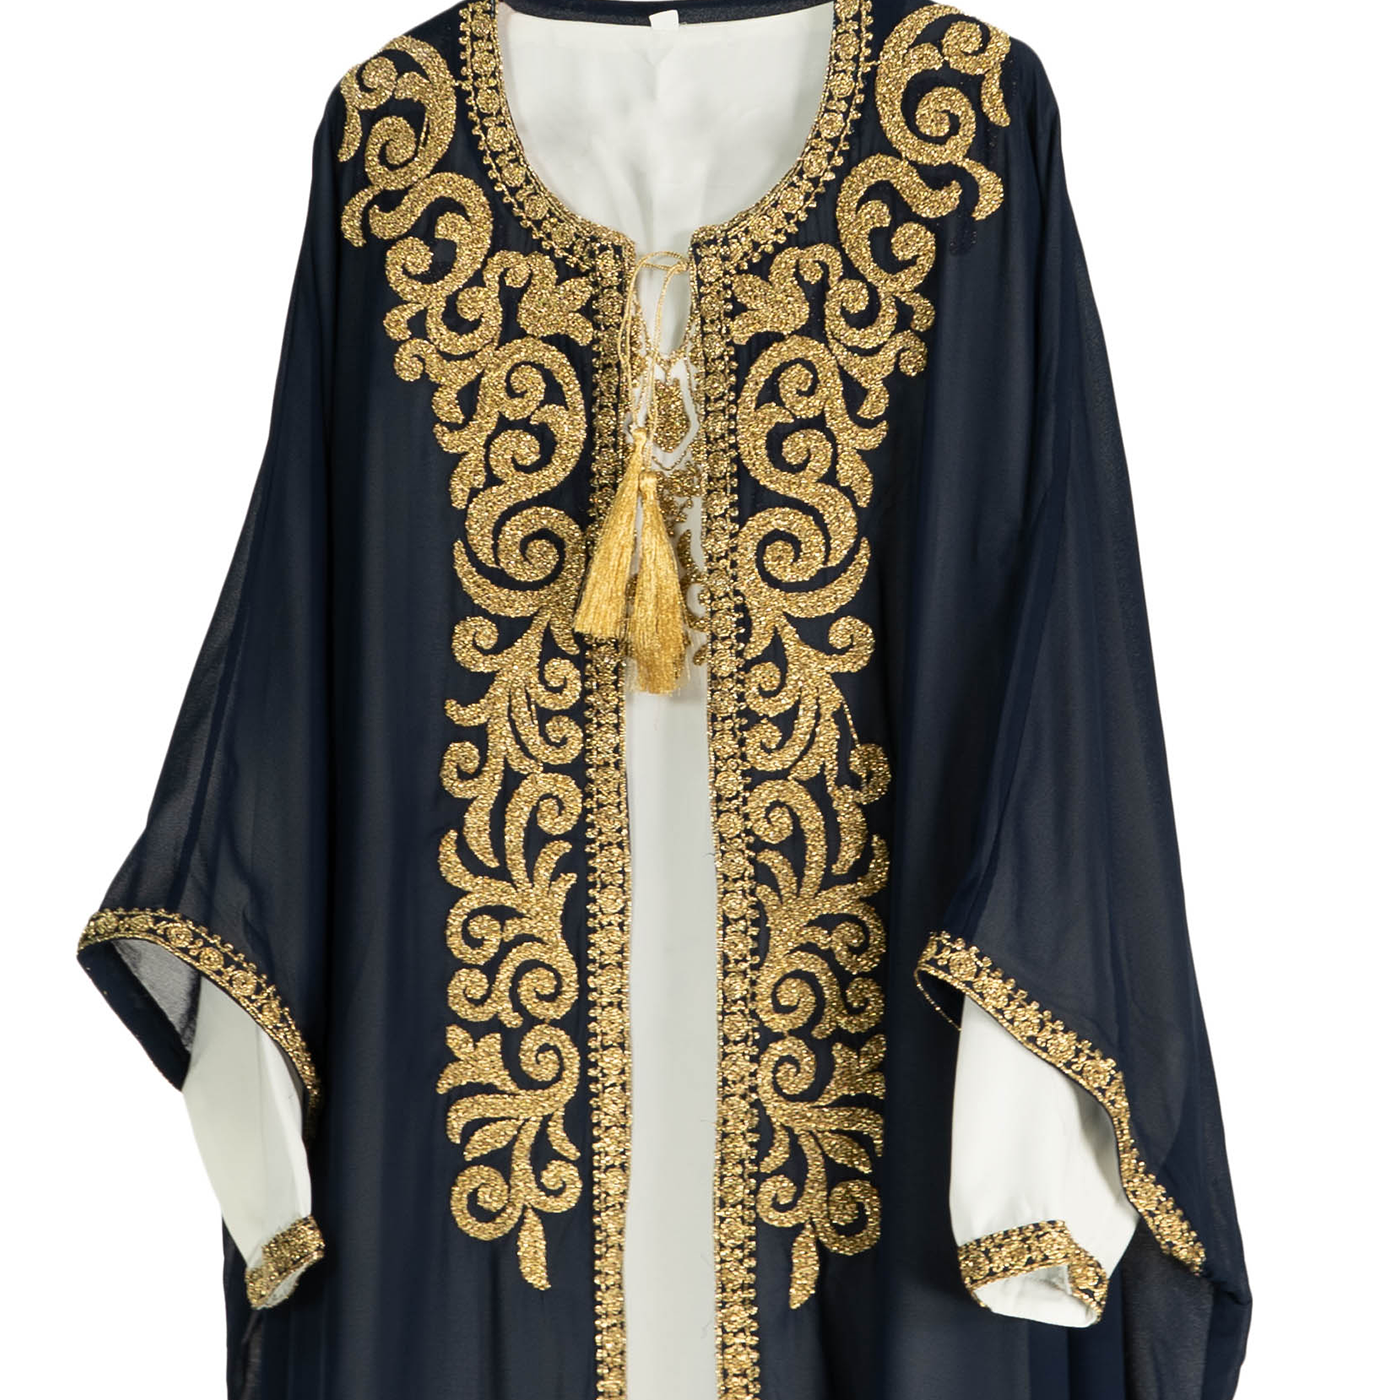 Royal Blue Arabic Dress